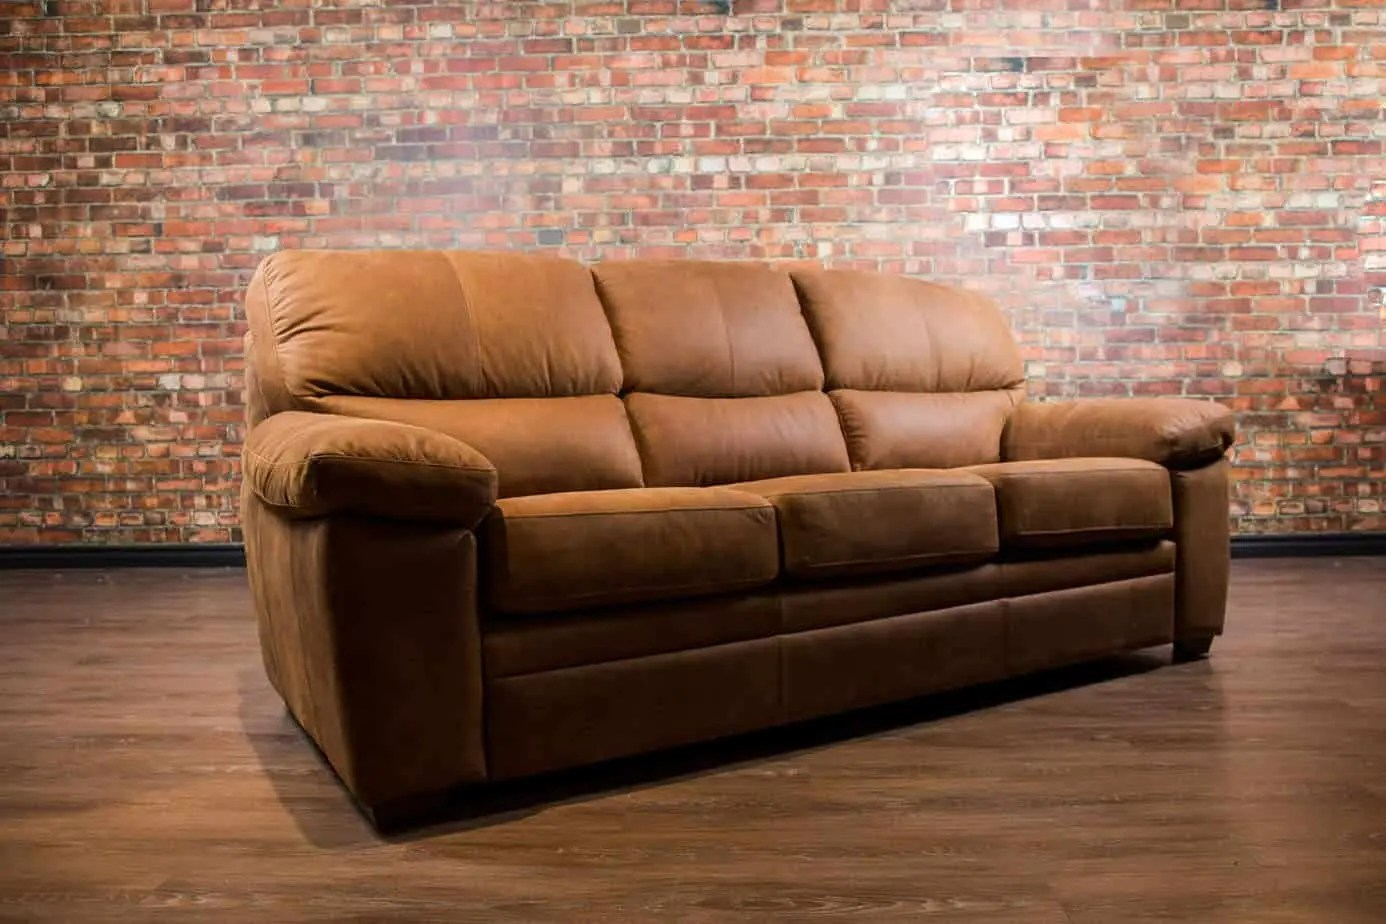 Leather Couch Canada The Bunker Leather Sofa Collection Canada 39s Boss Leather